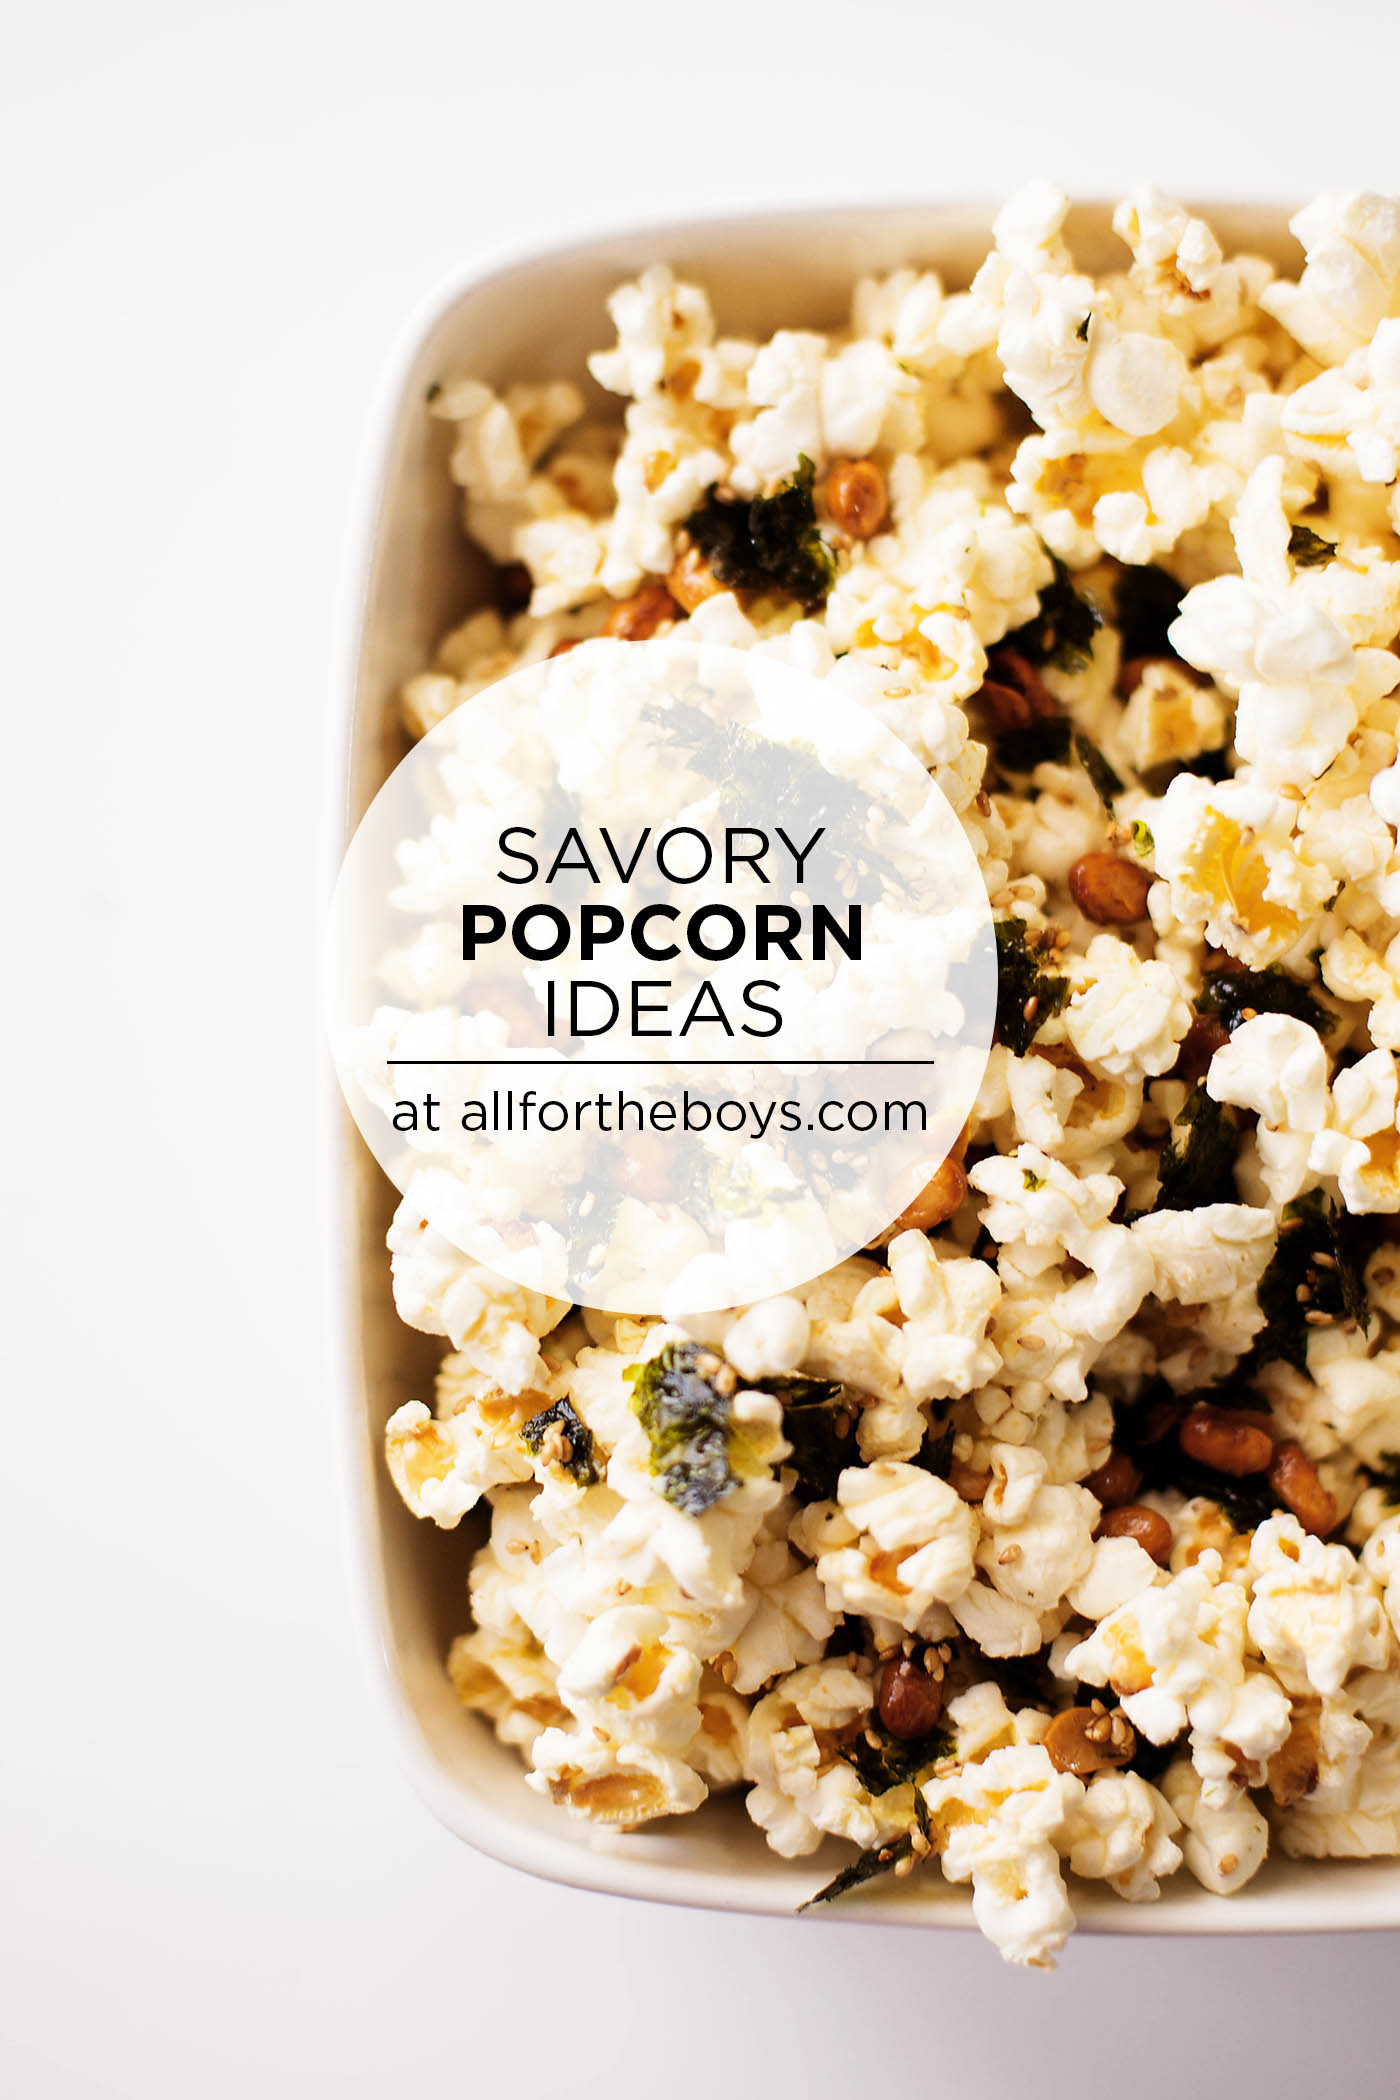 Savory popcorn recipes